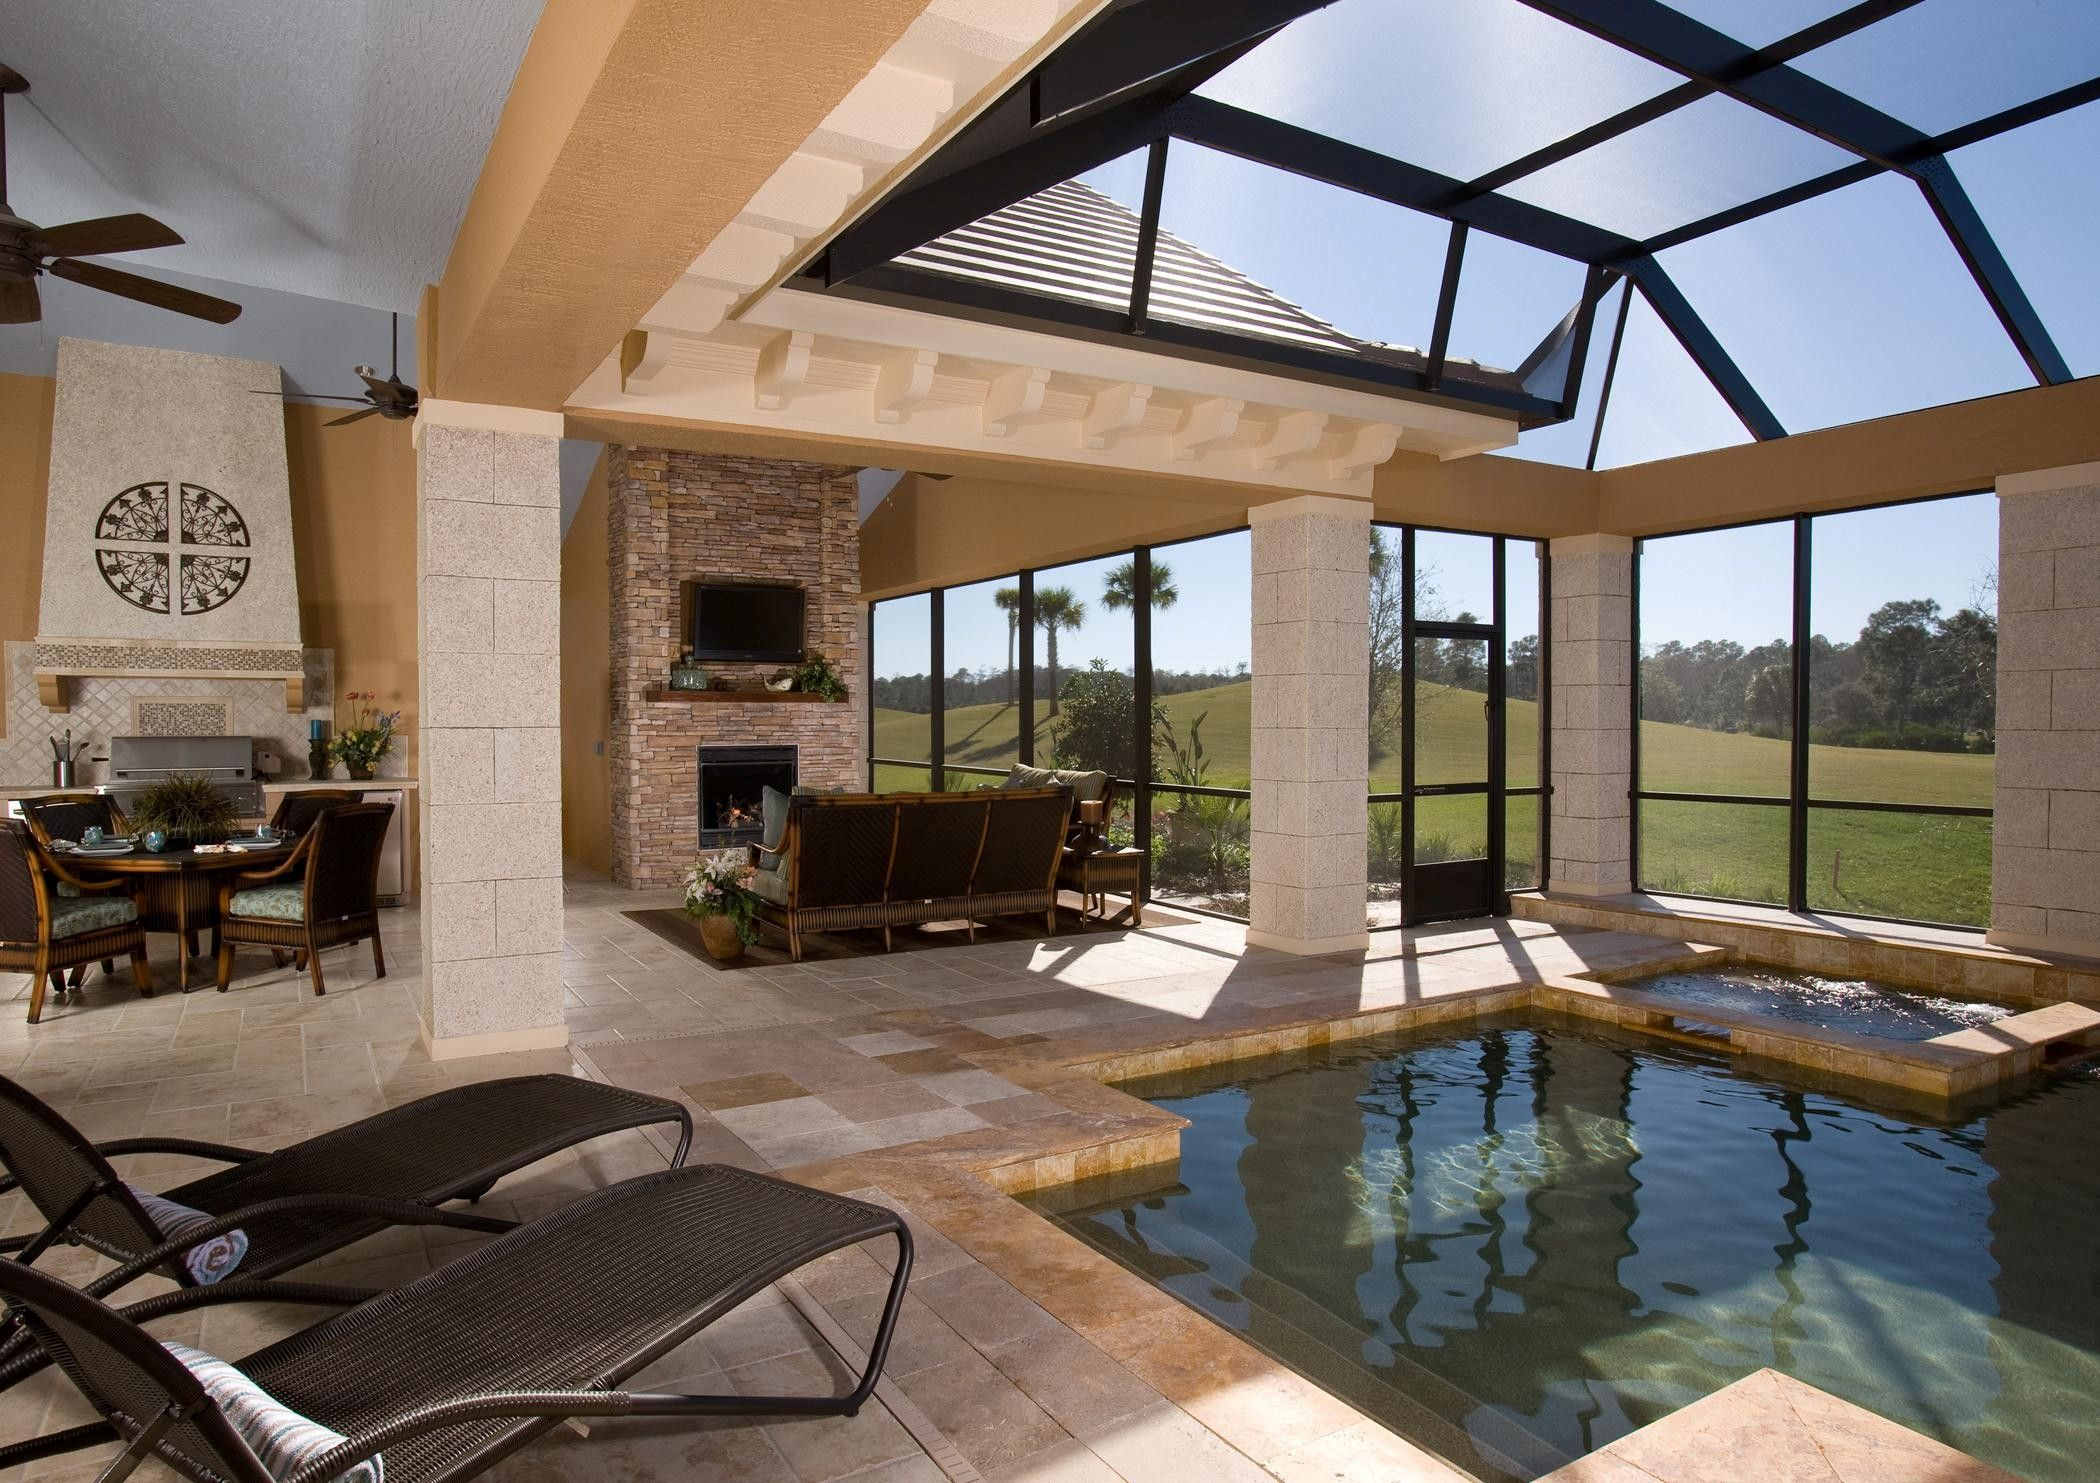 75 plus 25 outdoor rooms sun shelters to improve outdoor for What is a lanai in a house